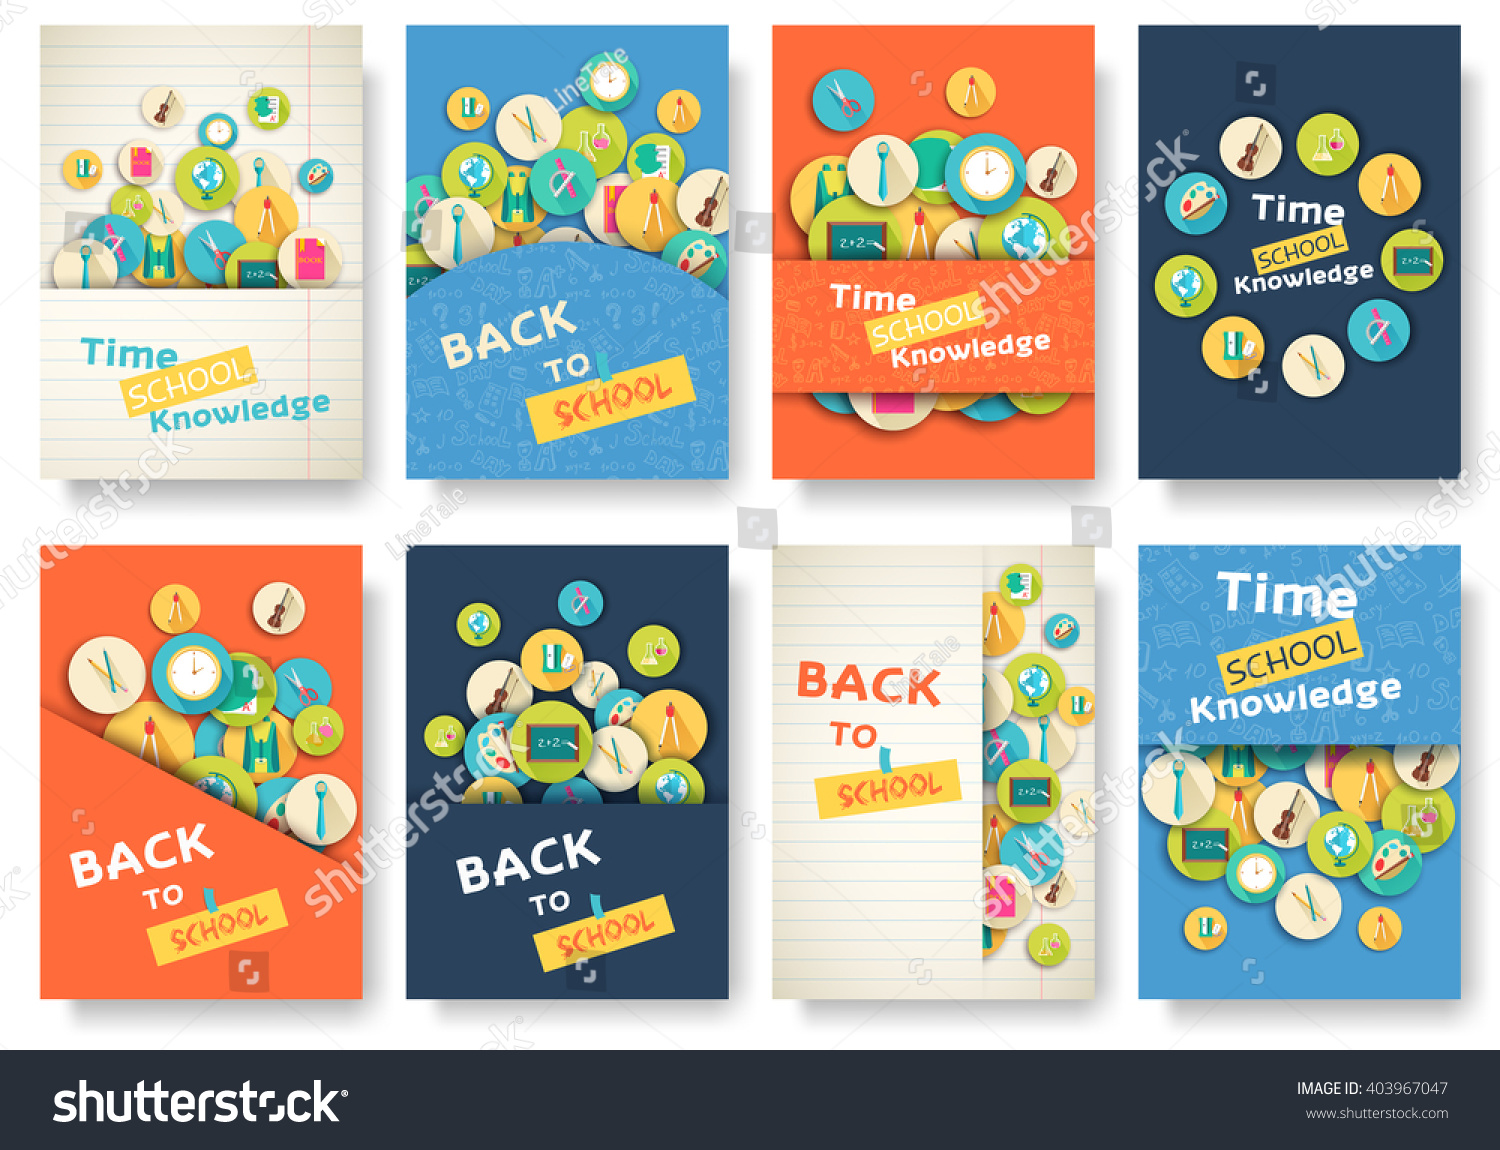 Back school information pages set education stock vector 403967047 back to school information pages set education template of flyear magazines posters pronofoot35fo Gallery